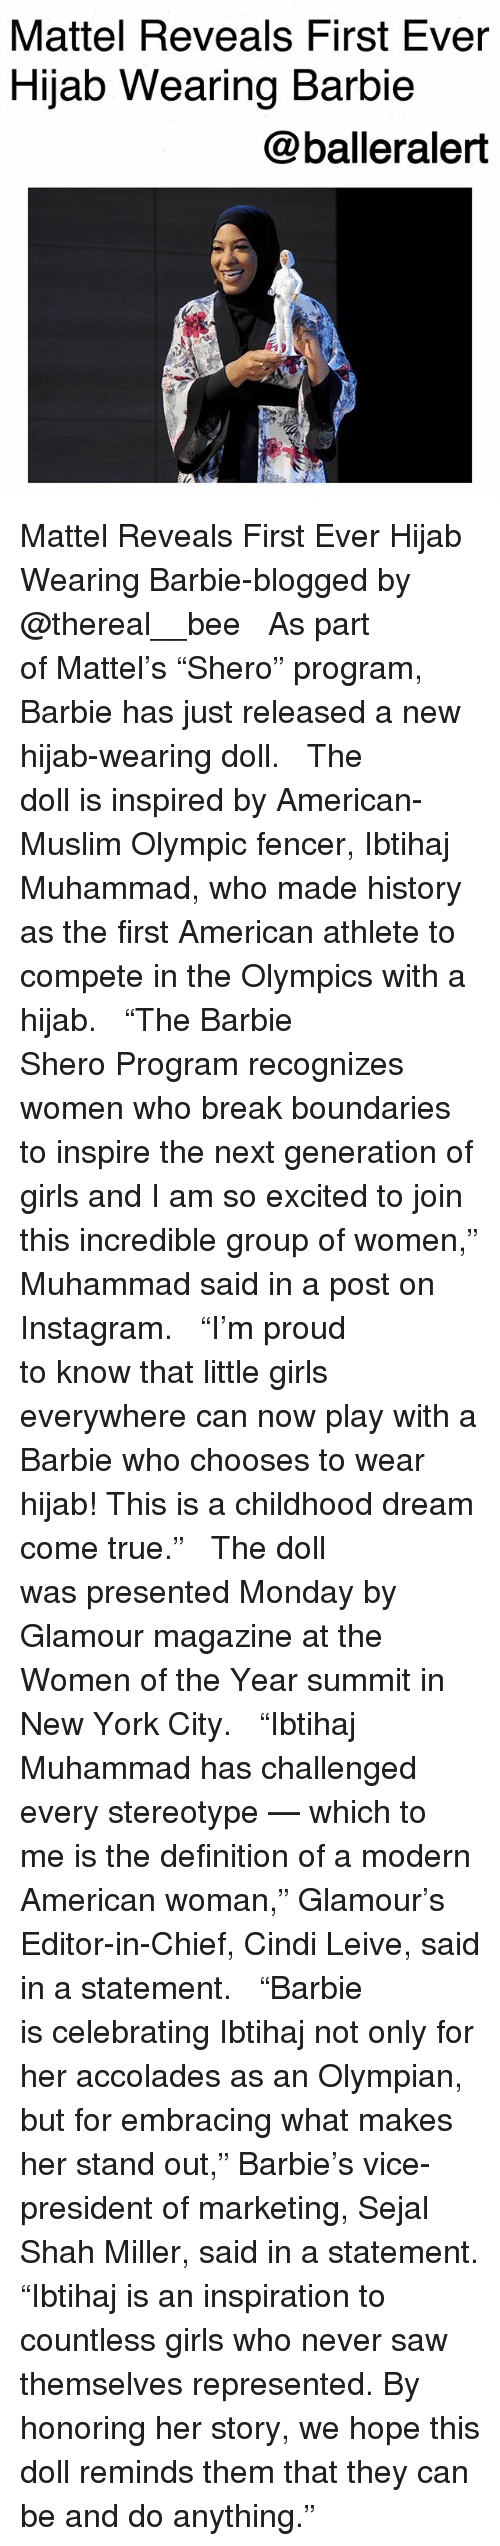 """Barbie, Girls, and Instagram: Mattel Reveals First Ever  Hijab Wearing Barbie  @balleralert Mattel Reveals First Ever Hijab Wearing Barbie-blogged by @thereal__bee ⠀⠀⠀⠀⠀⠀⠀⠀⠀ ⠀⠀ As part of Mattel's """"Shero"""" program, Barbie has just released a new hijab-wearing doll. ⠀⠀⠀⠀⠀⠀⠀⠀⠀ ⠀⠀ The doll is inspired by American-Muslim Olympic fencer, Ibtihaj Muhammad, who made history as the first American athlete to compete in the Olympics with a hijab. ⠀⠀⠀⠀⠀⠀⠀⠀⠀ ⠀⠀ """"The Barbie Shero Program recognizes women who break boundaries to inspire the next generation of girls and I am so excited to join this incredible group of women,"""" Muhammad said in a post on Instagram. ⠀⠀⠀⠀⠀⠀⠀⠀⠀ ⠀⠀ """"I'm proud to know that little girls everywhere can now play with a Barbie who chooses to wear hijab! This is a childhood dream come true."""" ⠀⠀⠀⠀⠀⠀⠀⠀⠀ ⠀⠀ The doll was presented Monday by Glamour magazine at the Women of the Year summit in New York City. ⠀⠀⠀⠀⠀⠀⠀⠀⠀ ⠀⠀ """"Ibtihaj Muhammad has challenged every stereotype — which to me is the definition of a modern American woman,"""" Glamour's Editor-in-Chief, Cindi Leive, said in a statement. ⠀⠀⠀⠀⠀⠀⠀⠀⠀ ⠀⠀ """"Barbie is celebrating Ibtihaj not only for her accolades as an Olympian, but for embracing what makes her stand out,"""" Barbie's vice-president of marketing, Sejal Shah Miller, said in a statement. """"Ibtihaj is an inspiration to countless girls who never saw themselves represented. By honoring her story, we hope this doll reminds them that they can be and do anything."""""""